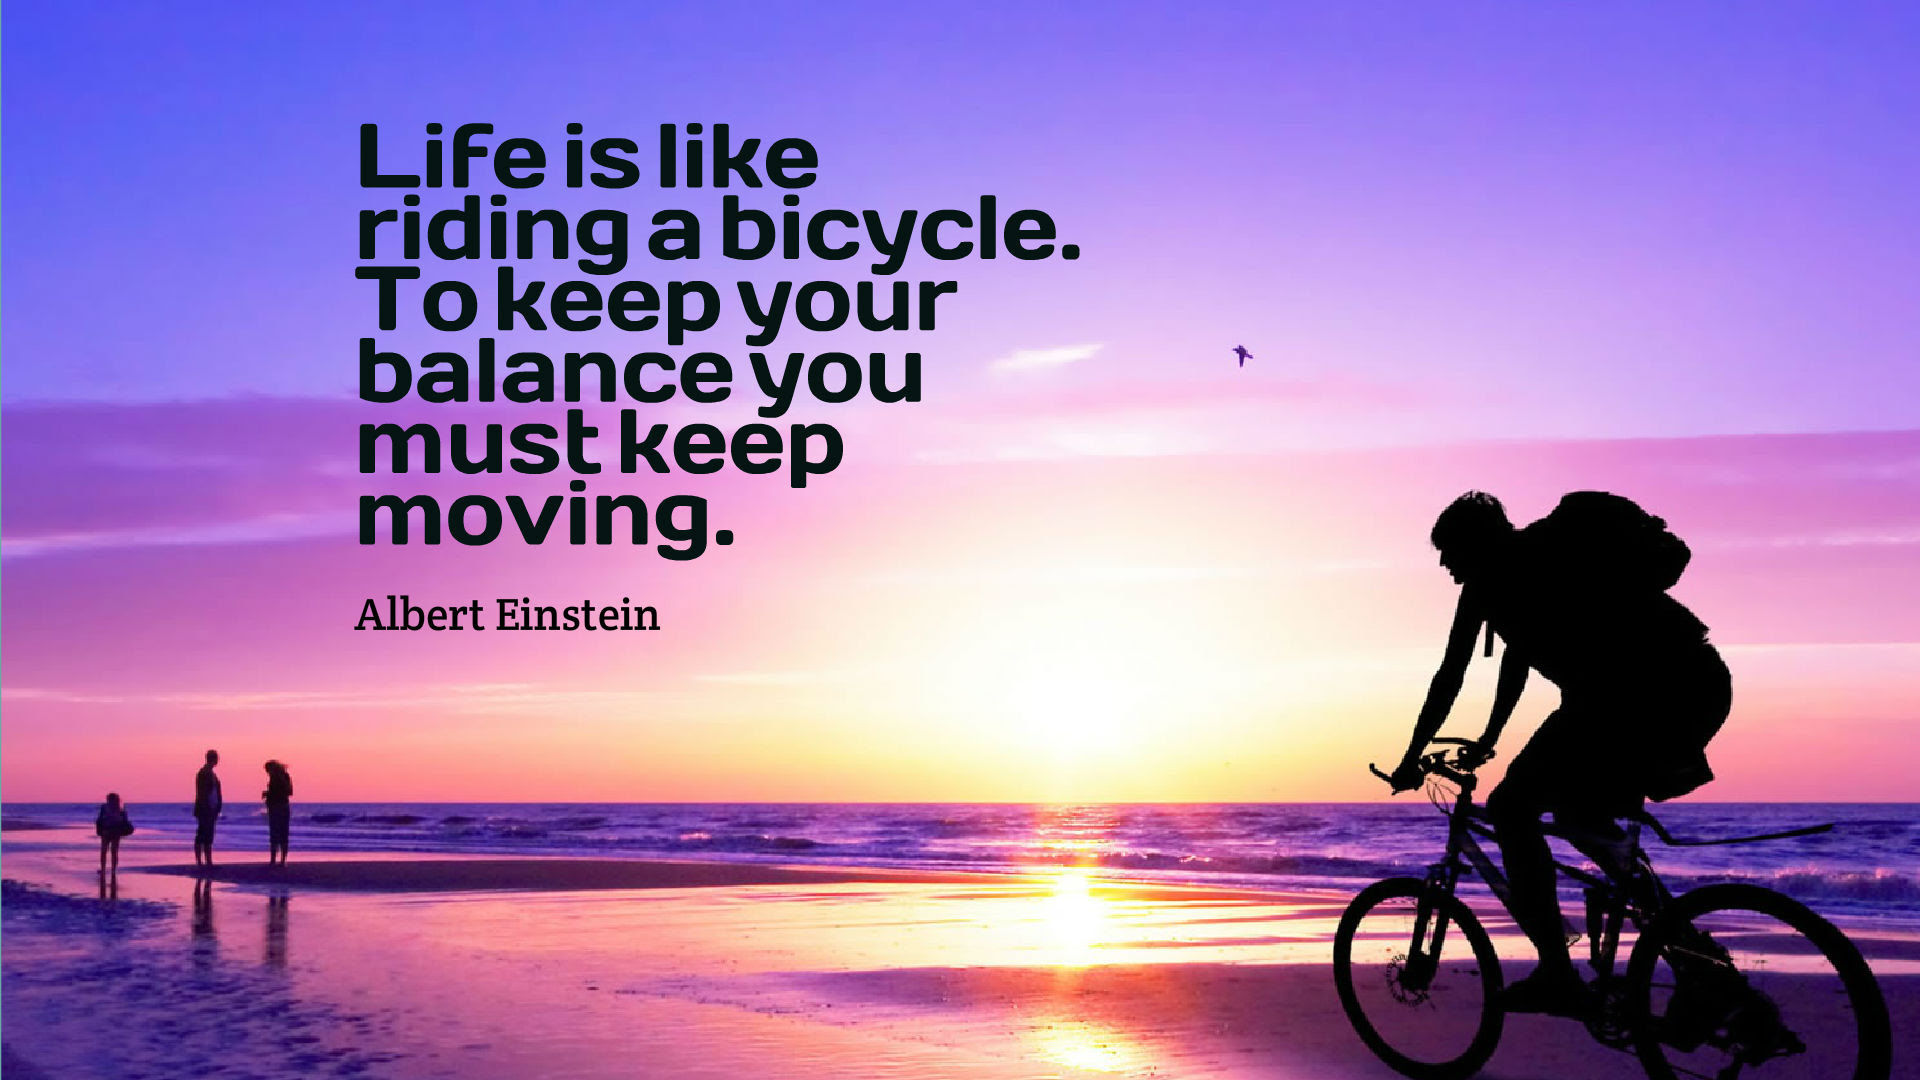 Life Is A Riding Bicycle Quotes Wallpaper 10723 Baltana